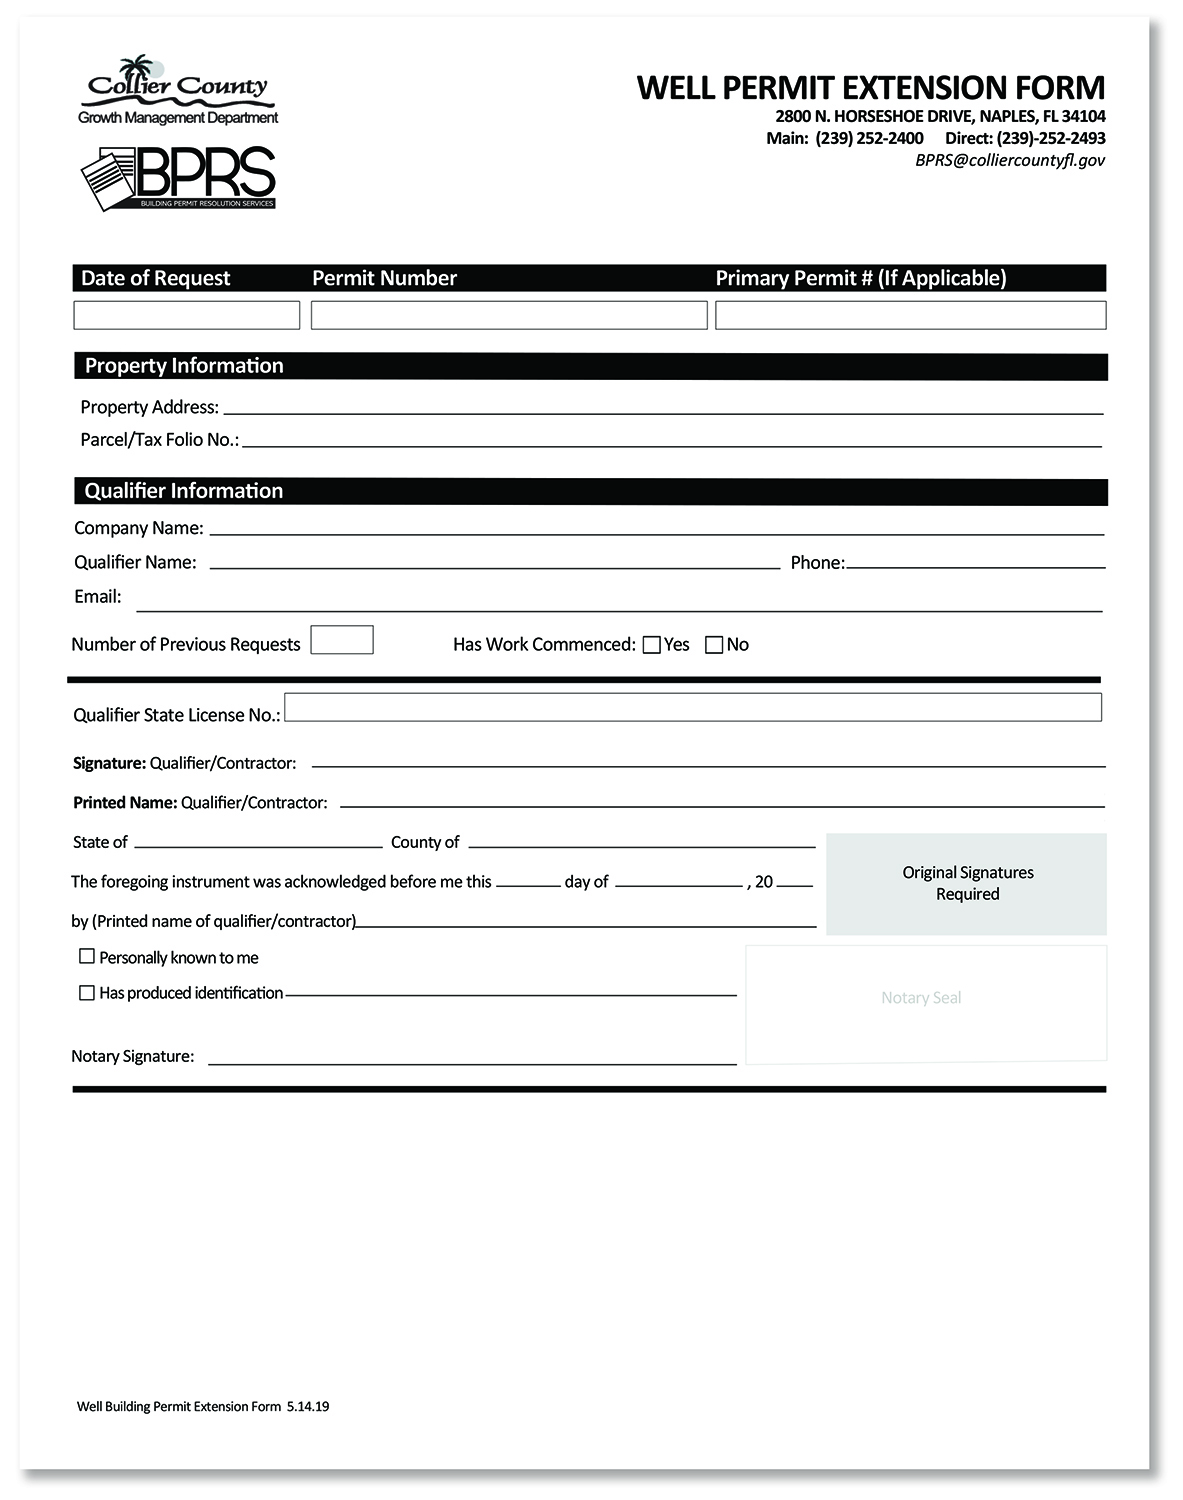 Well Permit Extension Form IMAGE